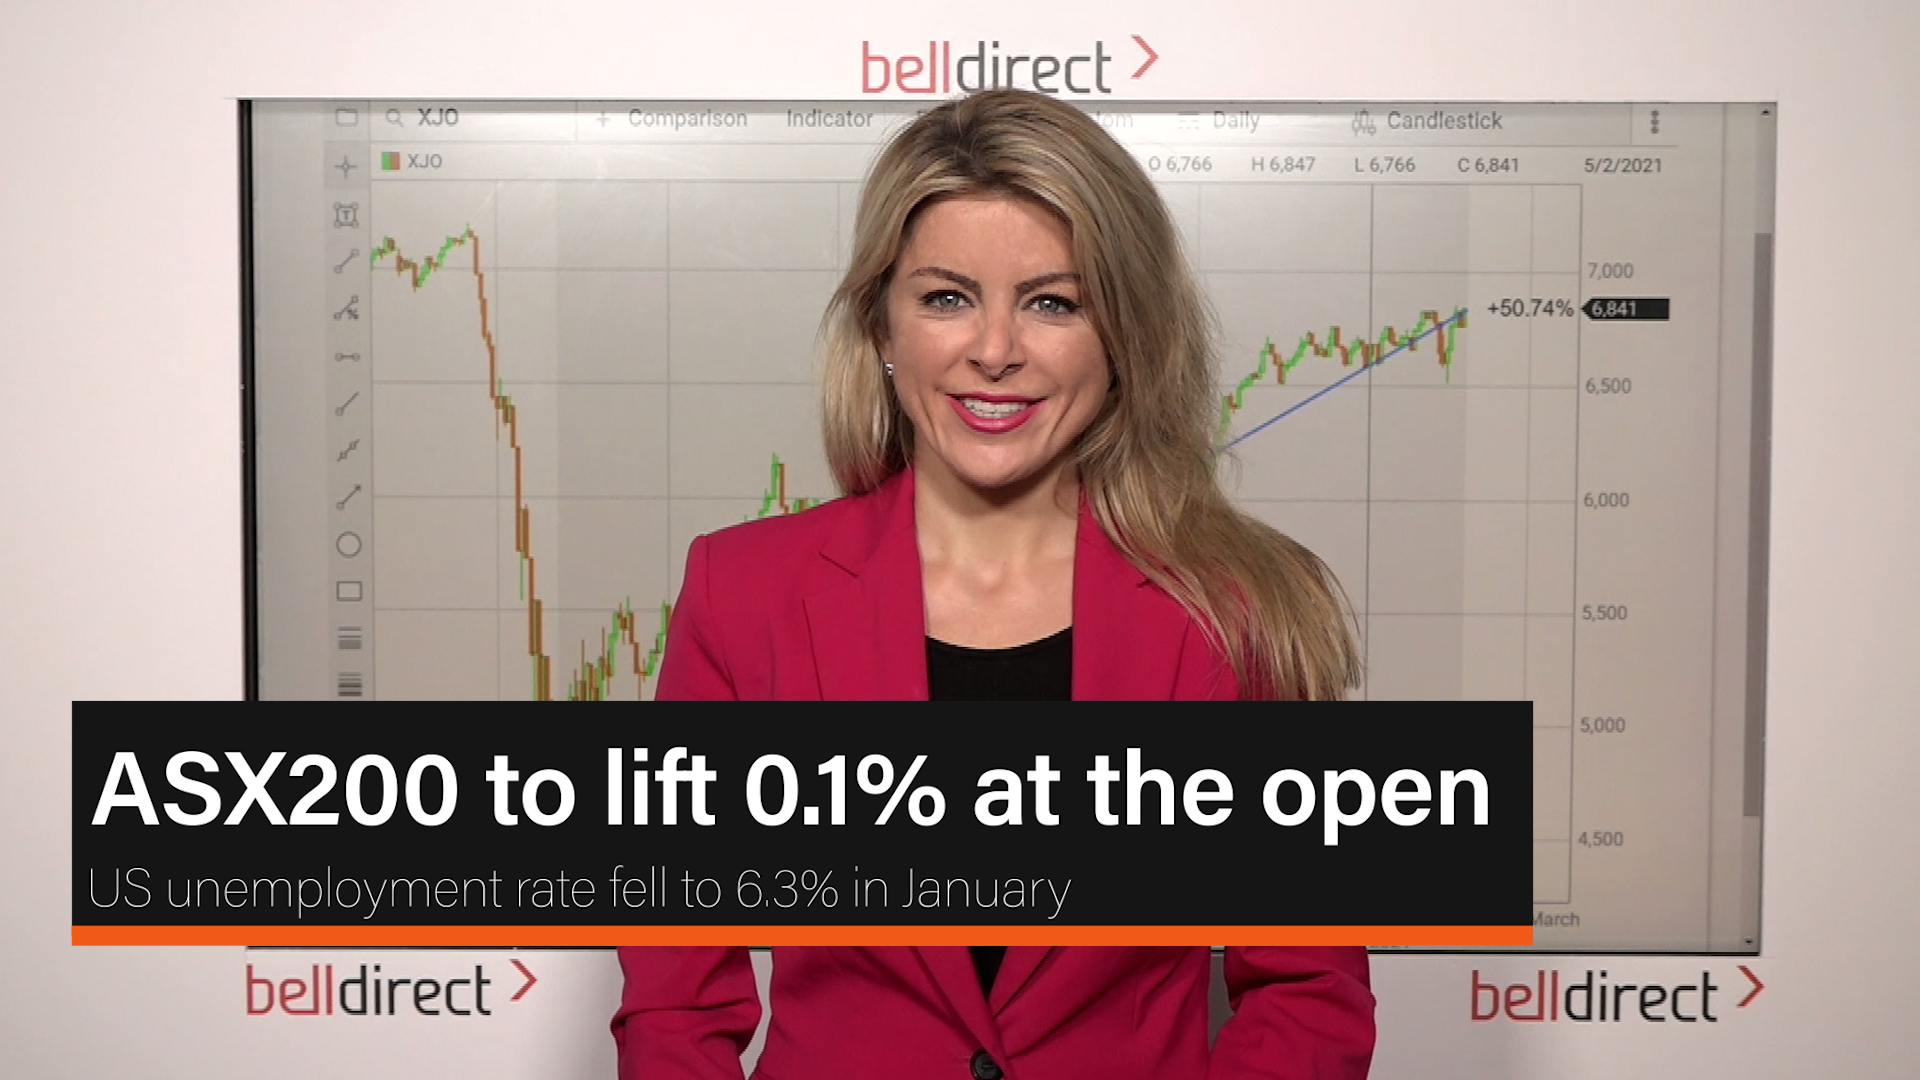 ASX200 to lift 0.1% at the open